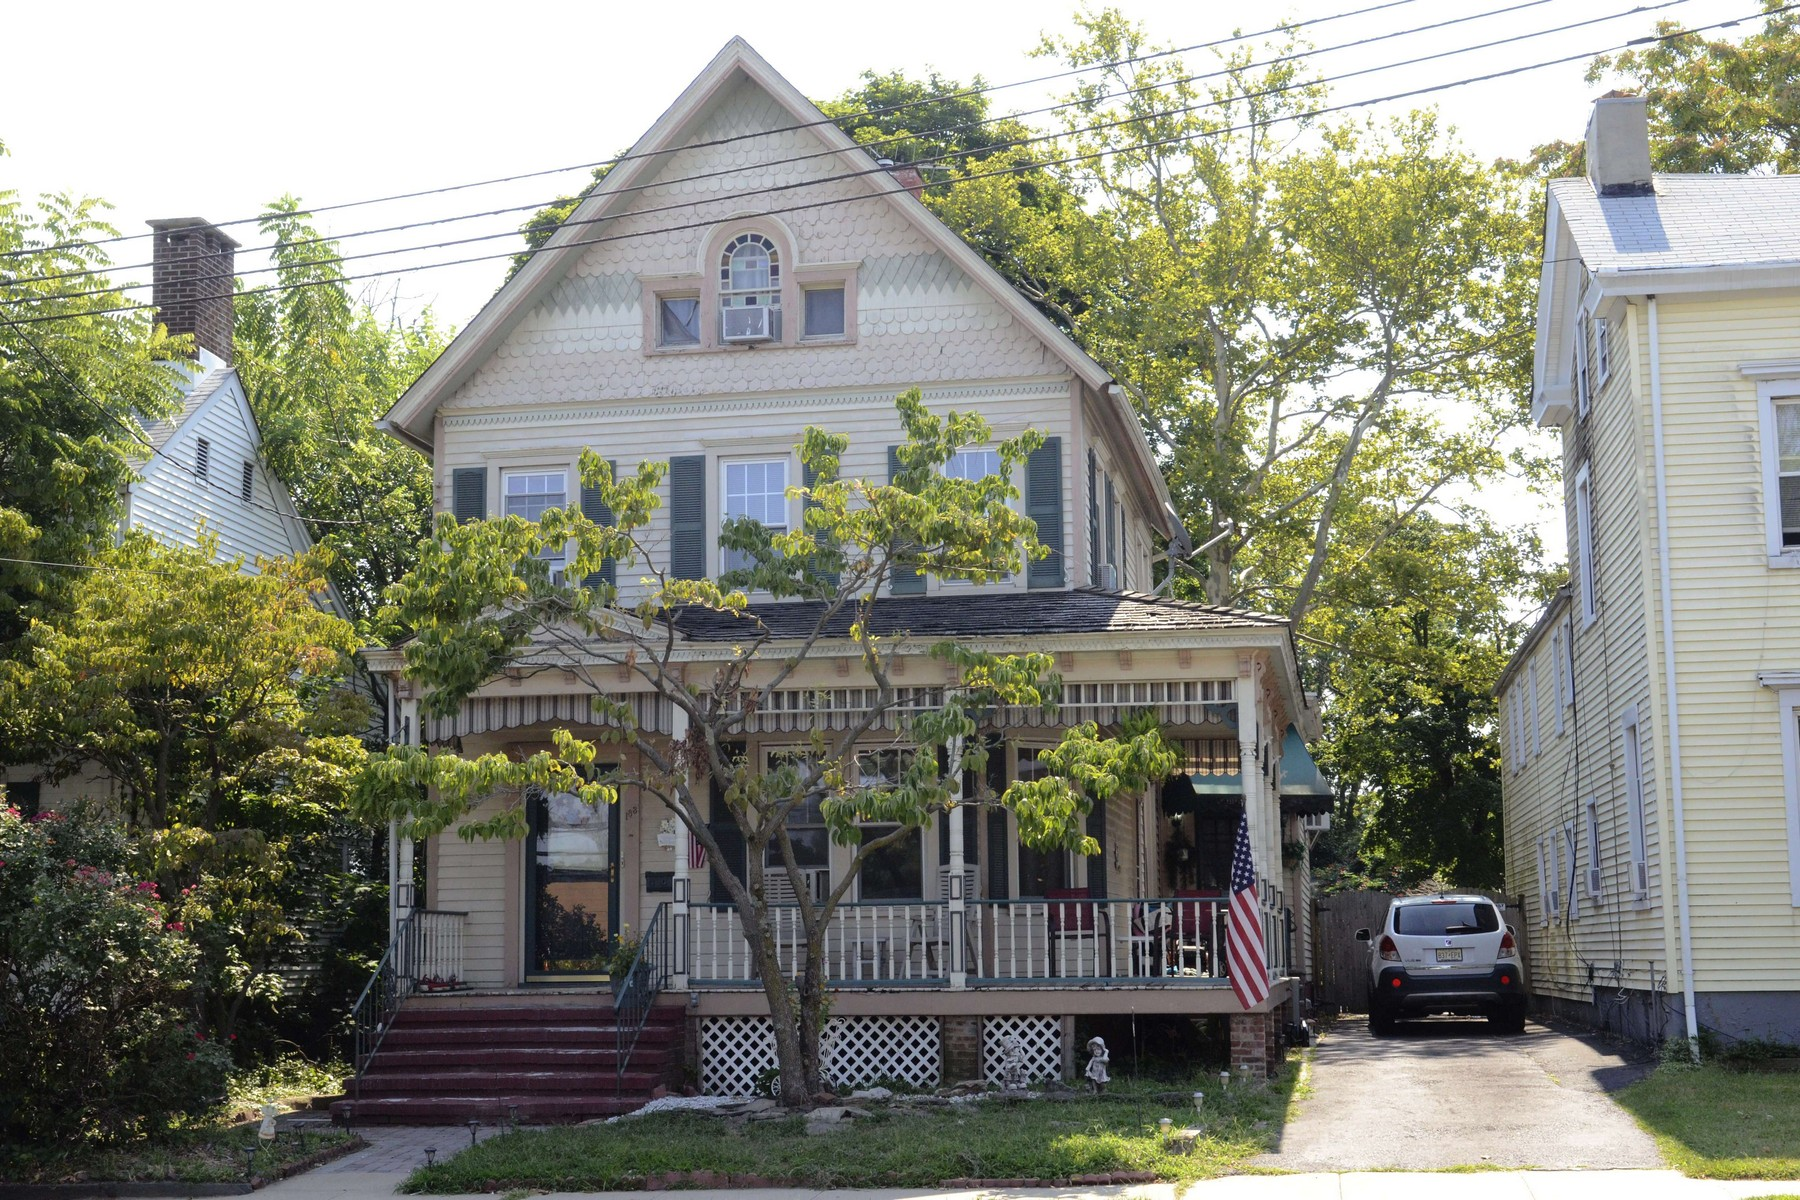 Single Family Home for Sale at Fabulous, Spacious Victorian - Live & Work at Home 183 Main St. Matawan, New Jersey 07747 United States